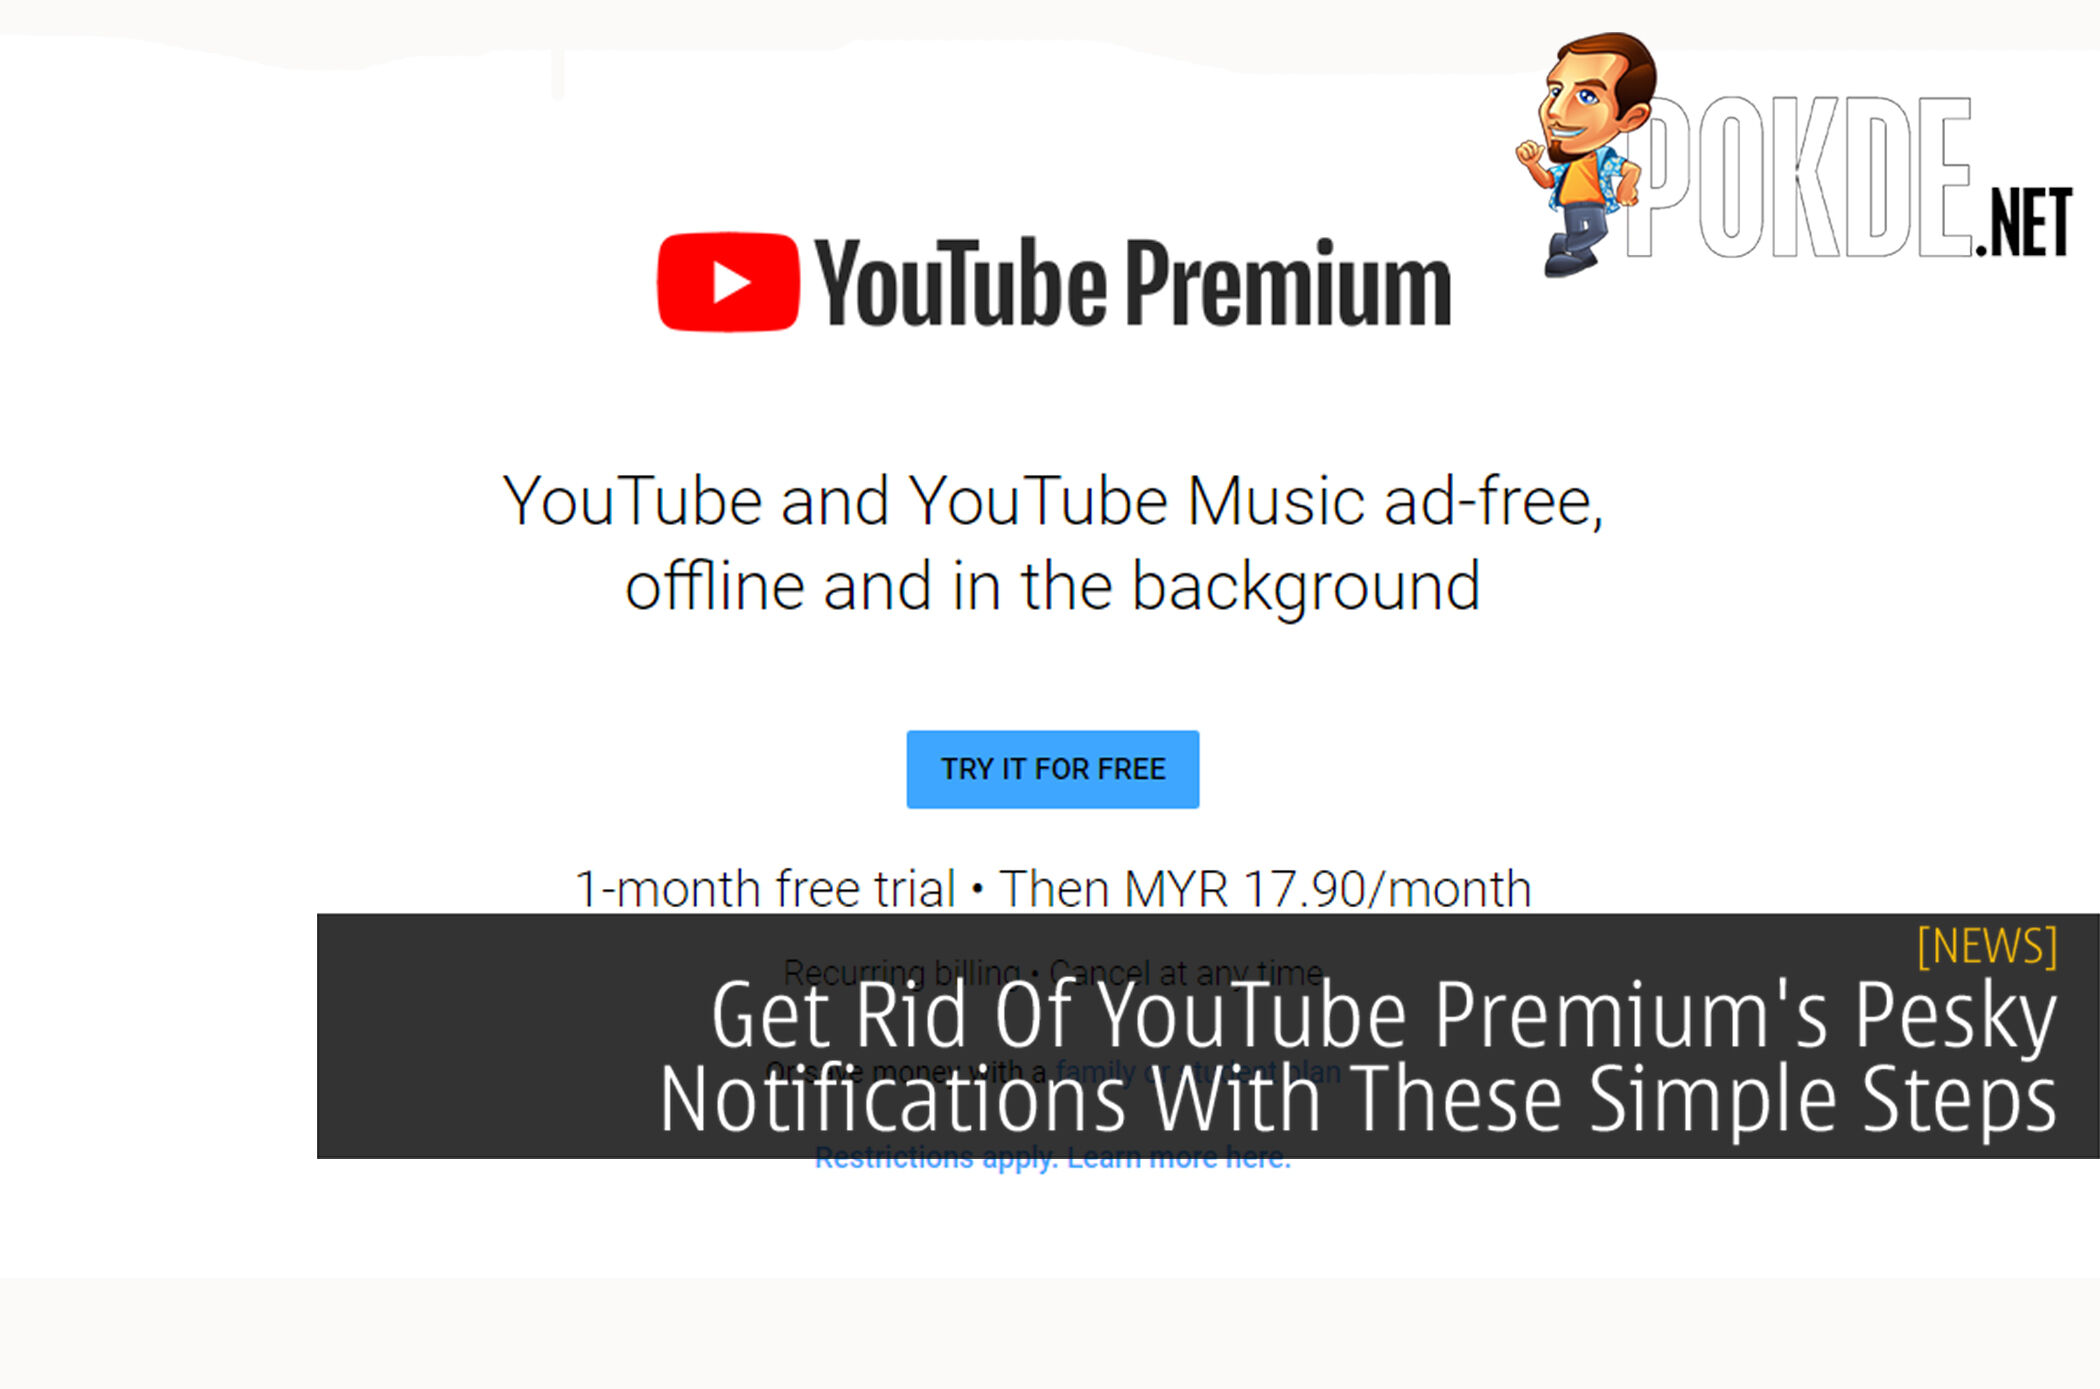 Get Rid Of YouTube Premium's Pesky Notifications With These Simple Steps 9